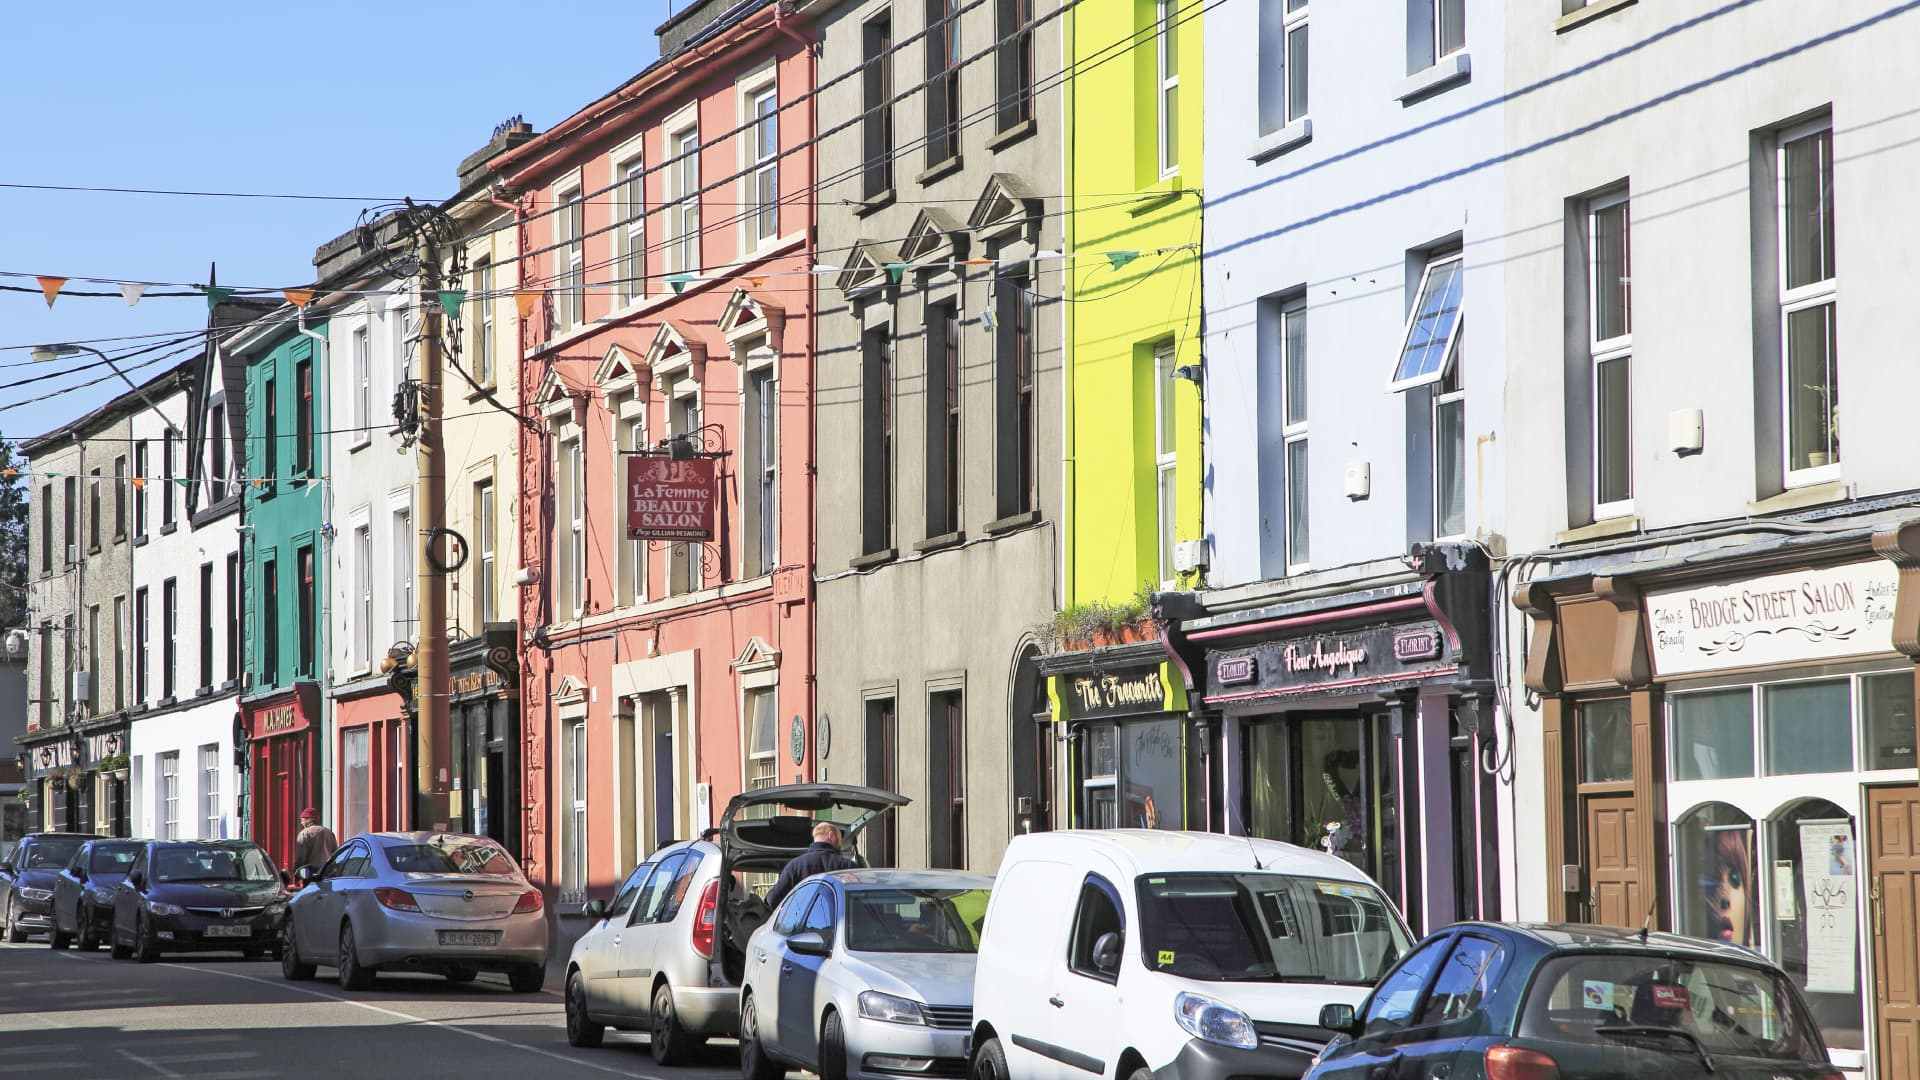 Terrace of historic shops and buildings, Skibbereen, County Cork, Ireland, Irish Republic. (Photo by: Geography Photos/Universal Images Group via Getty Images)